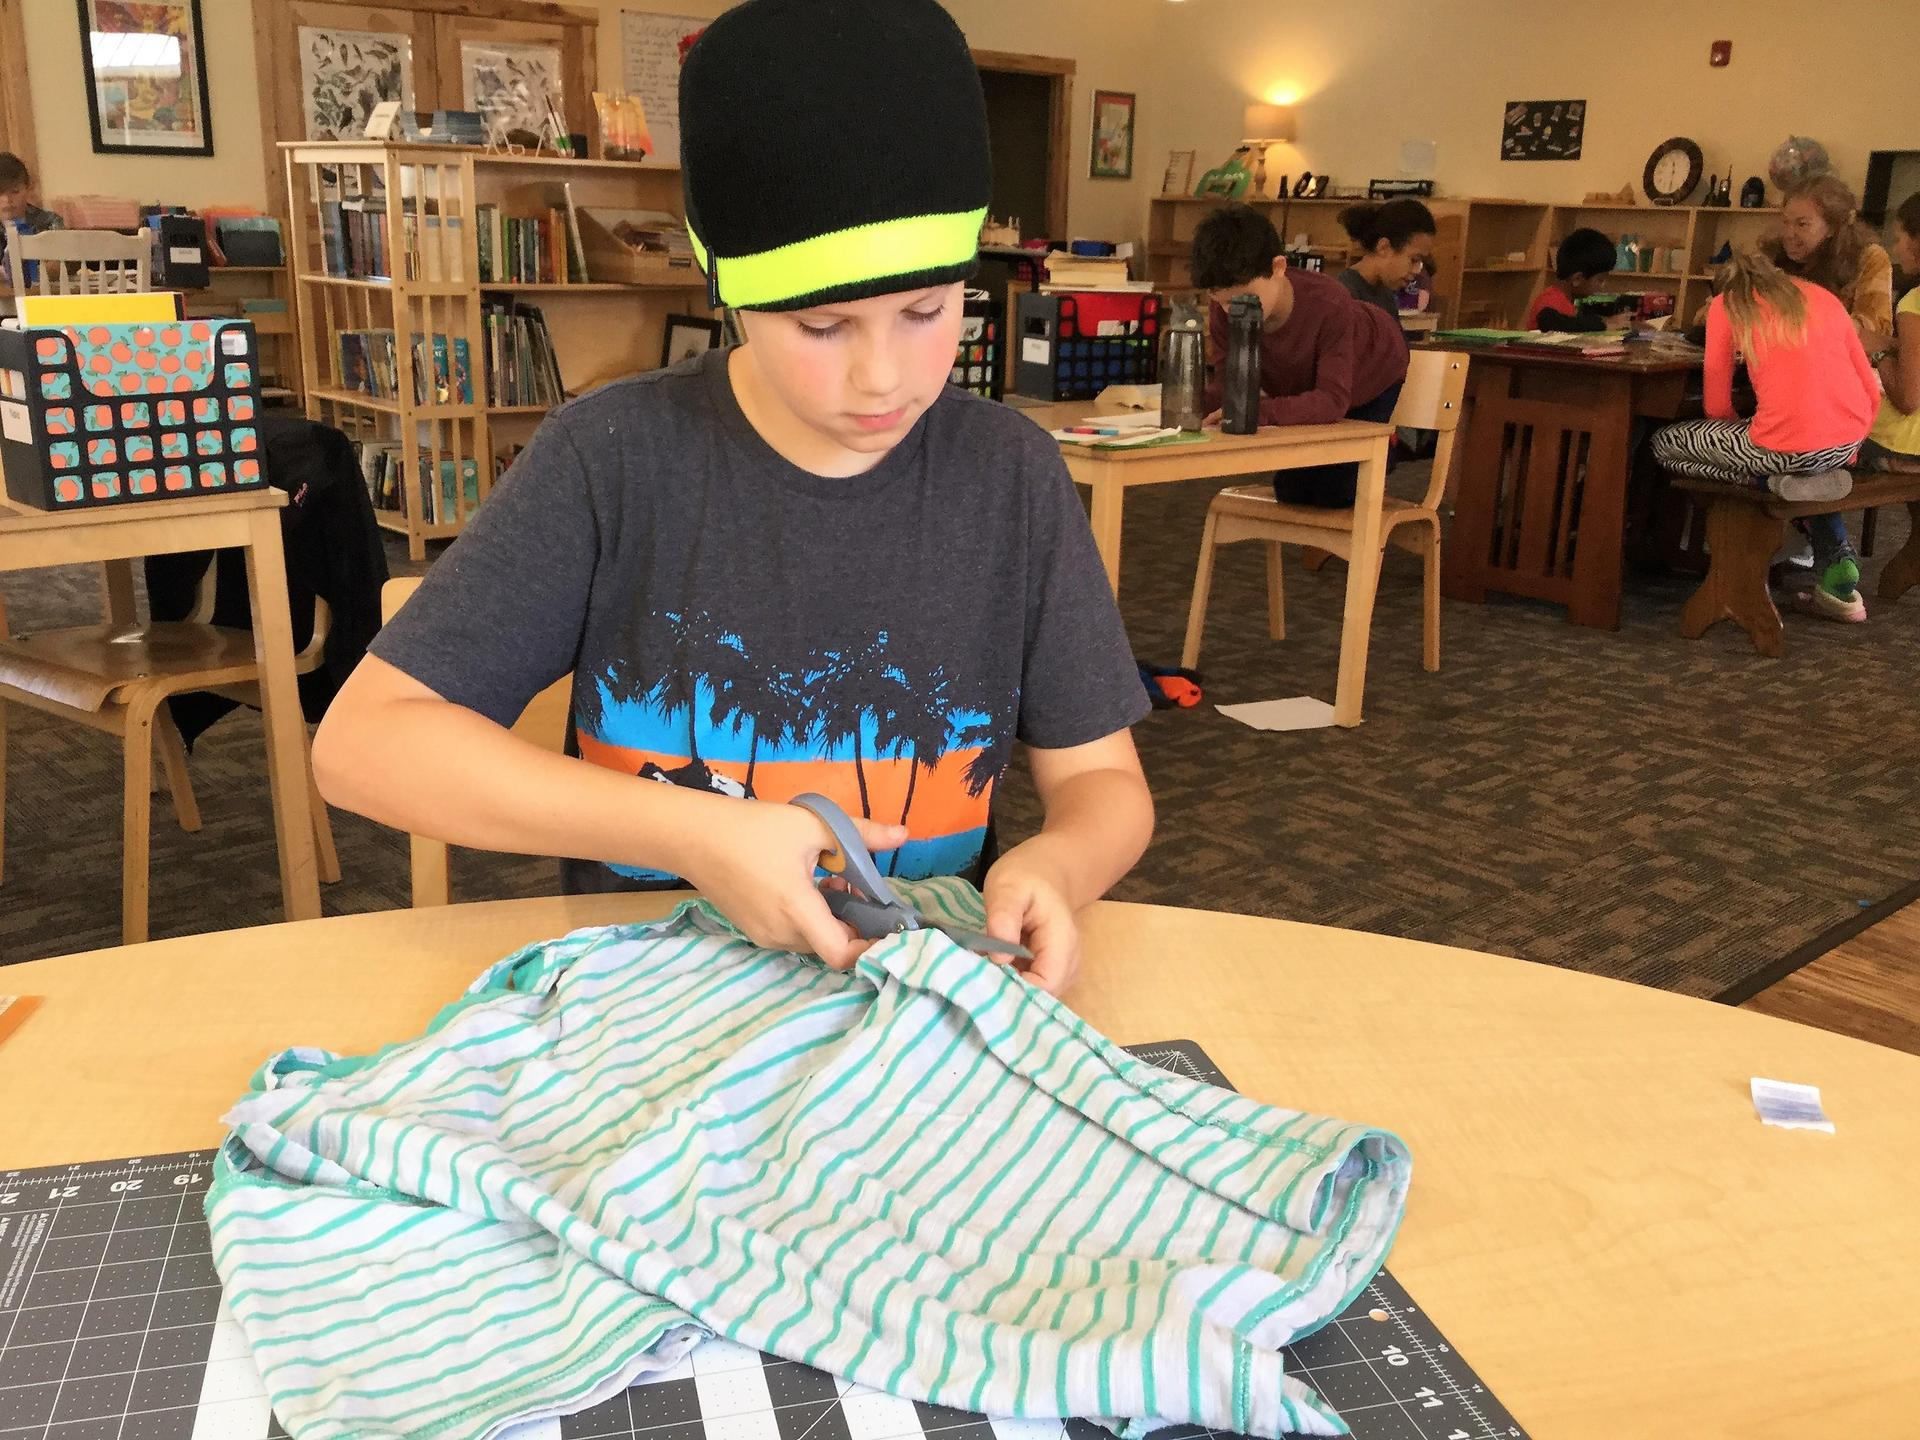 Student cutting fabric